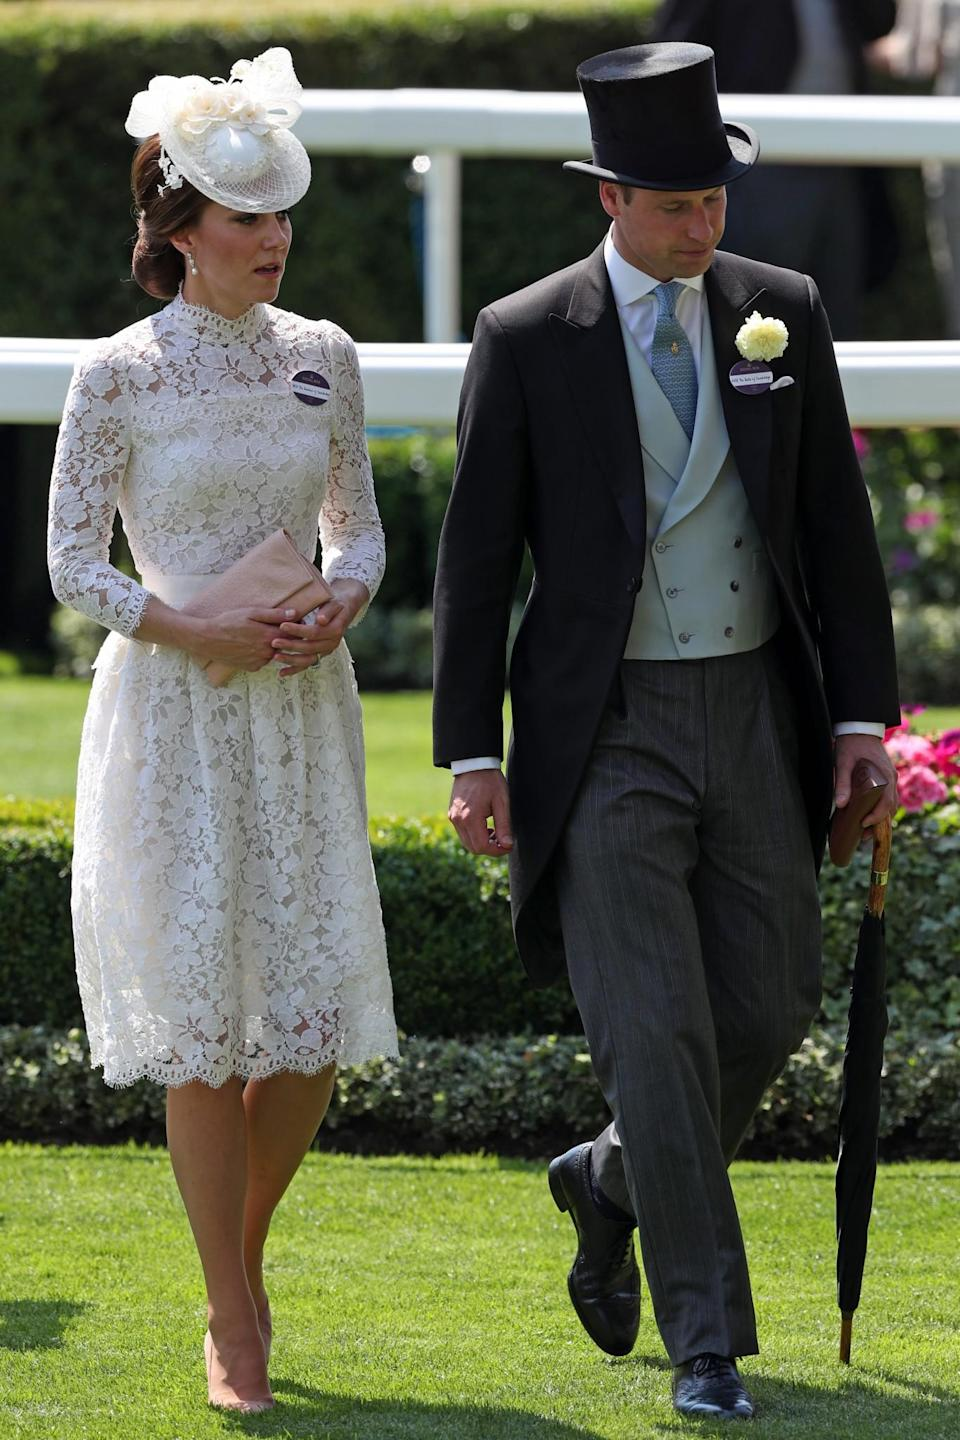 <p>Kate and William arrived at the 2017 race event in a very similar look to last year. The Duchess donned a white lacy dress by Alexander McQueen with a pearl-embroidered hat while William went for a black-and-grey morning suit.<br><i>[Photo: PA]</i> </p>